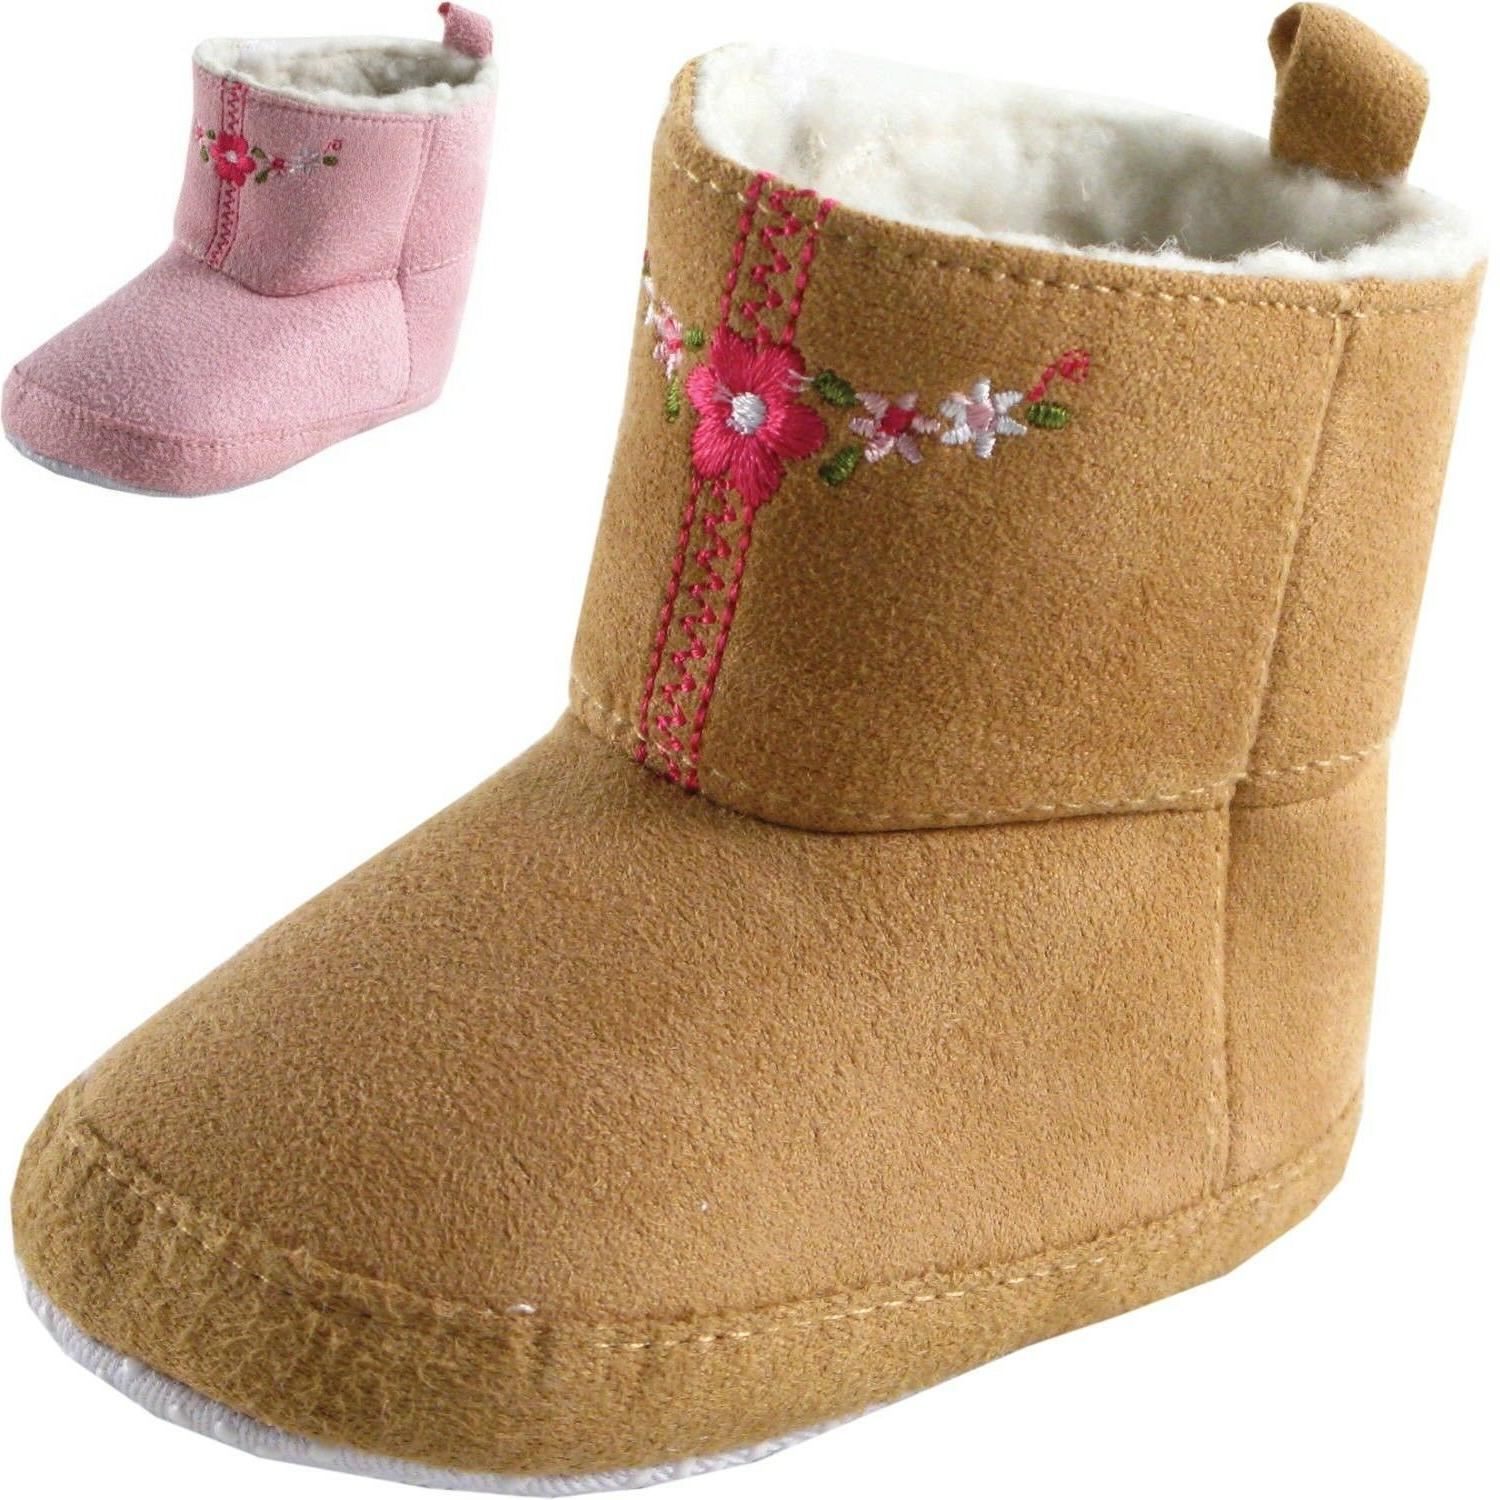 newborn baby girl embroidered suede boots